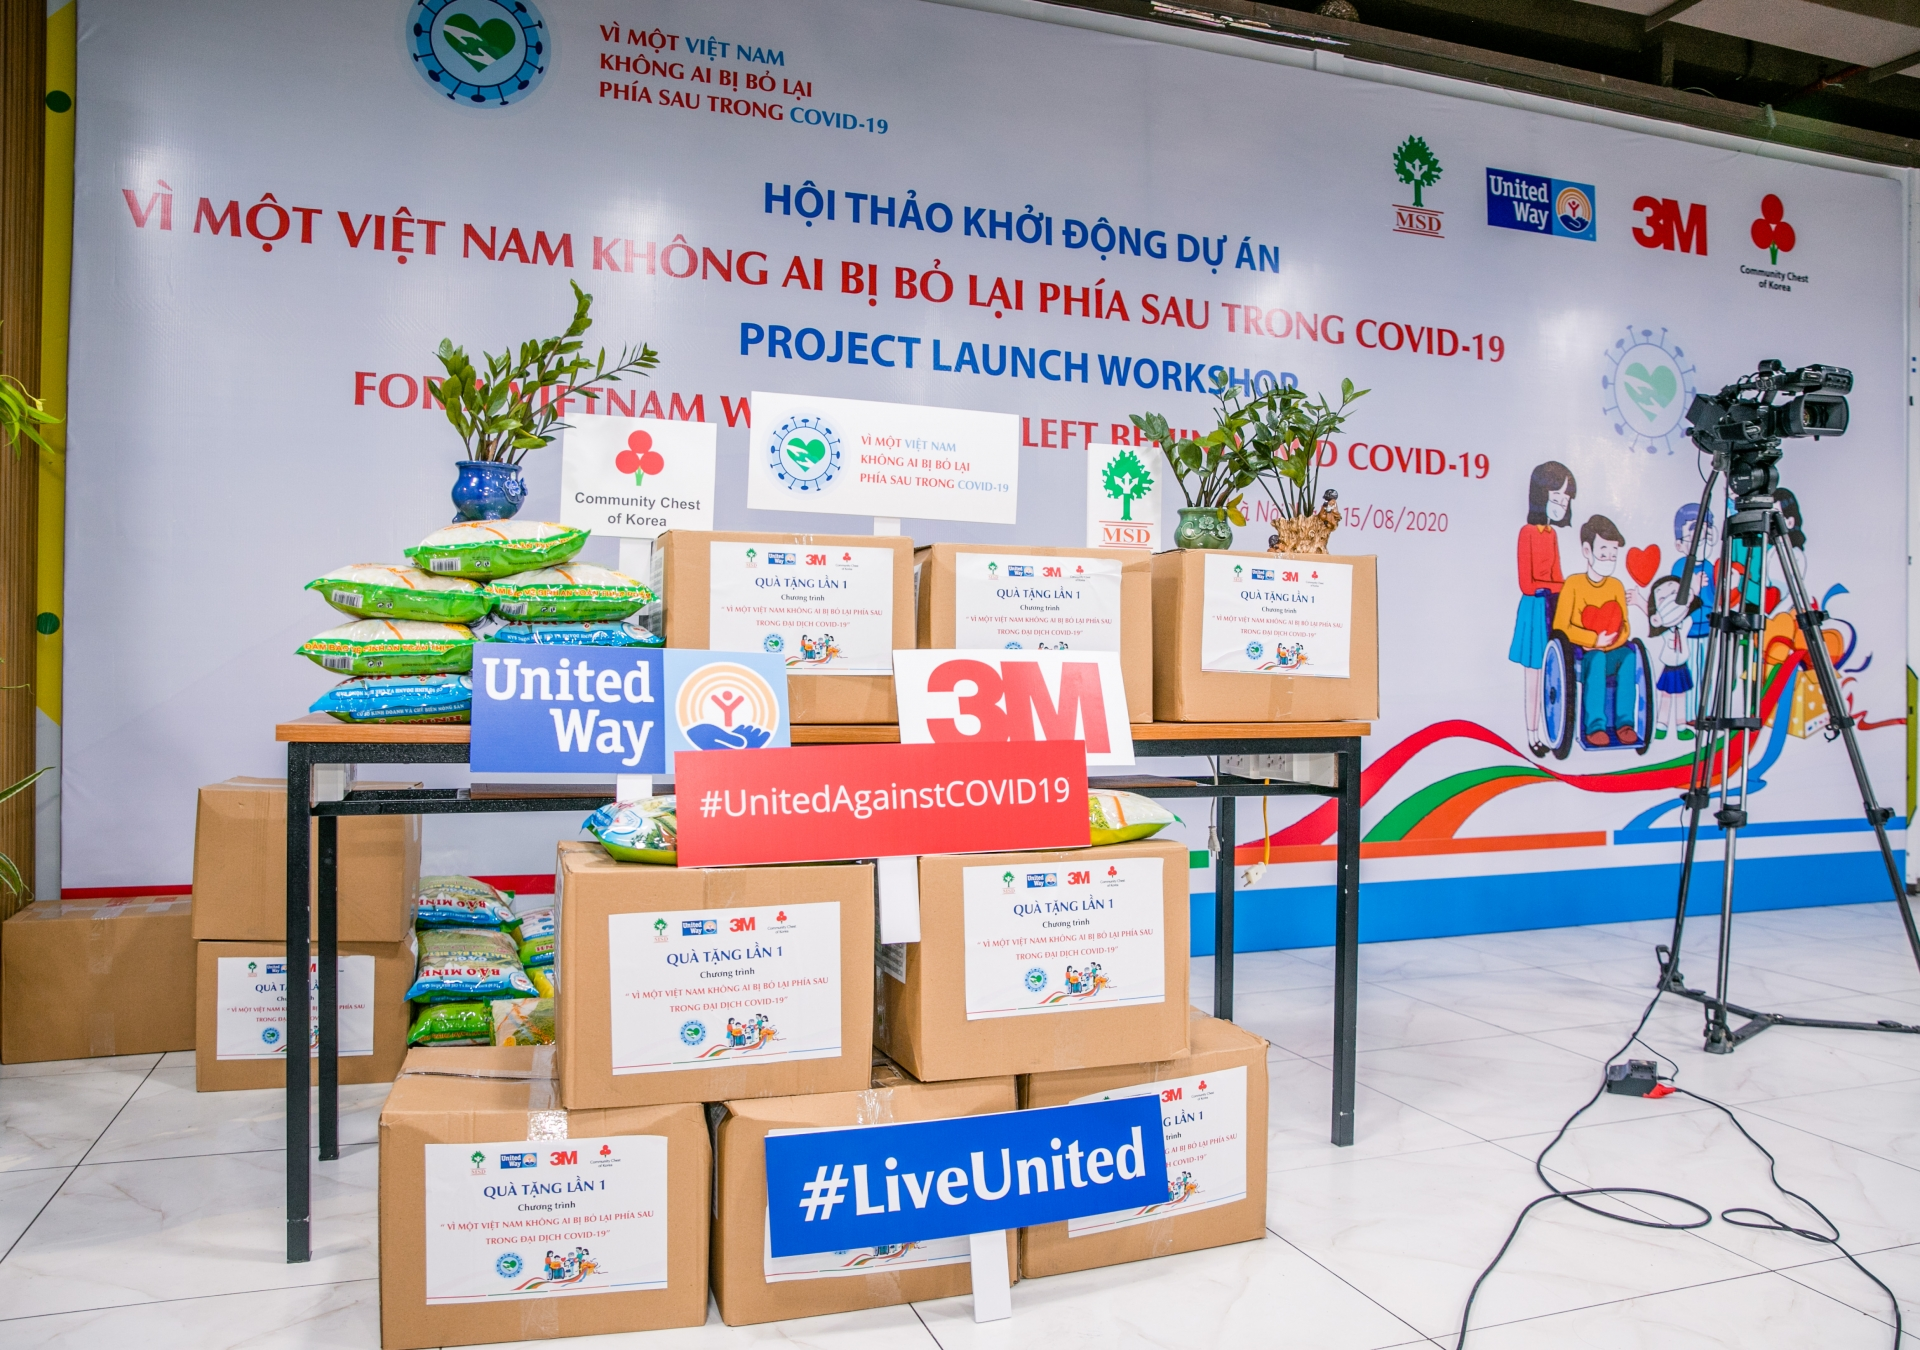 3M Vietnam and MSD team up to support communities hit by COVID-19